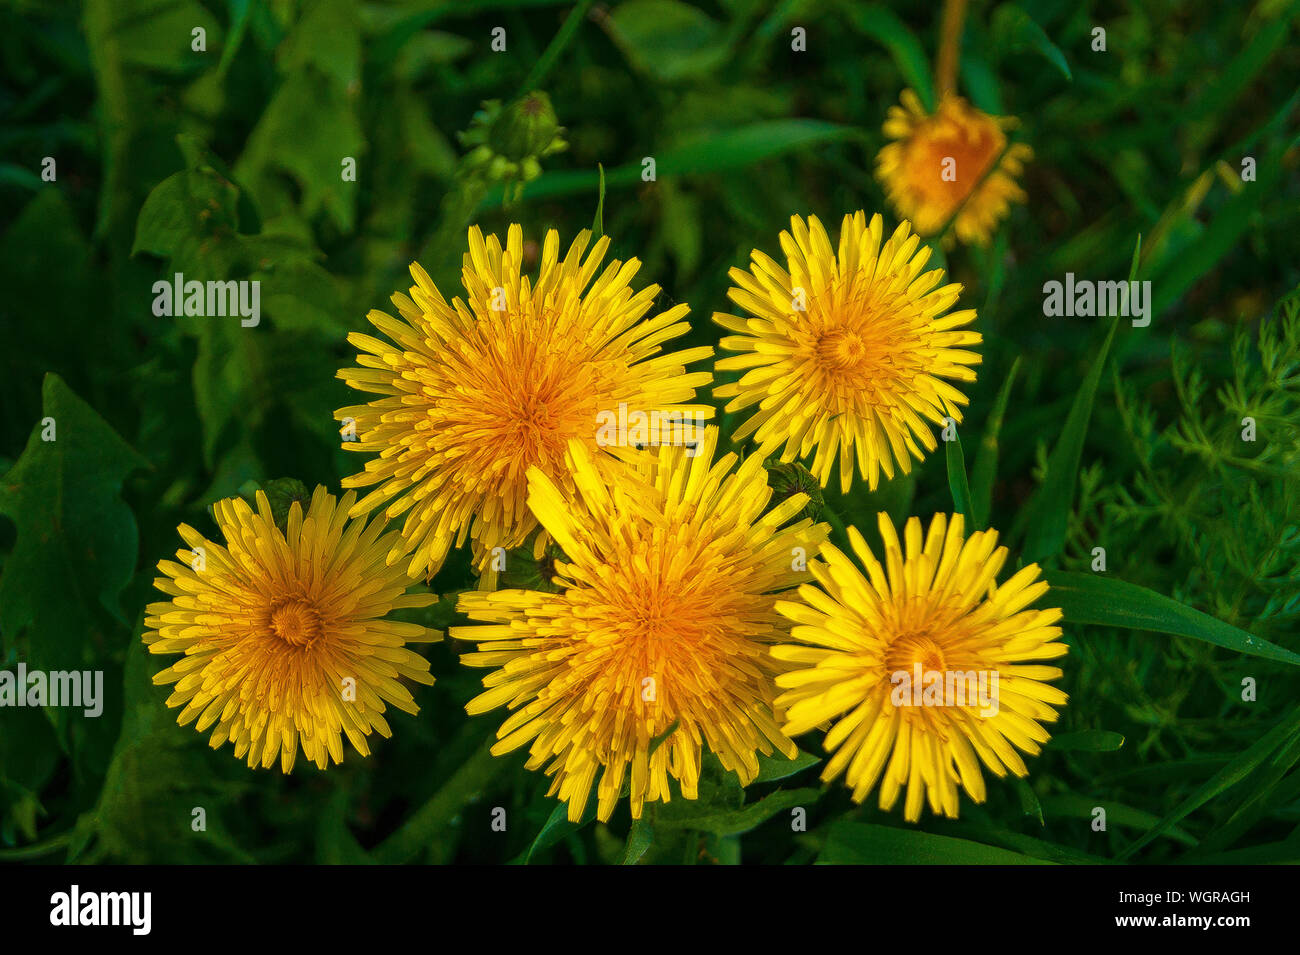 Summer. Heat. Macro shooting. Bright yellow dandelions in rich green grass. Visible every stamen and every petal Stock Photo